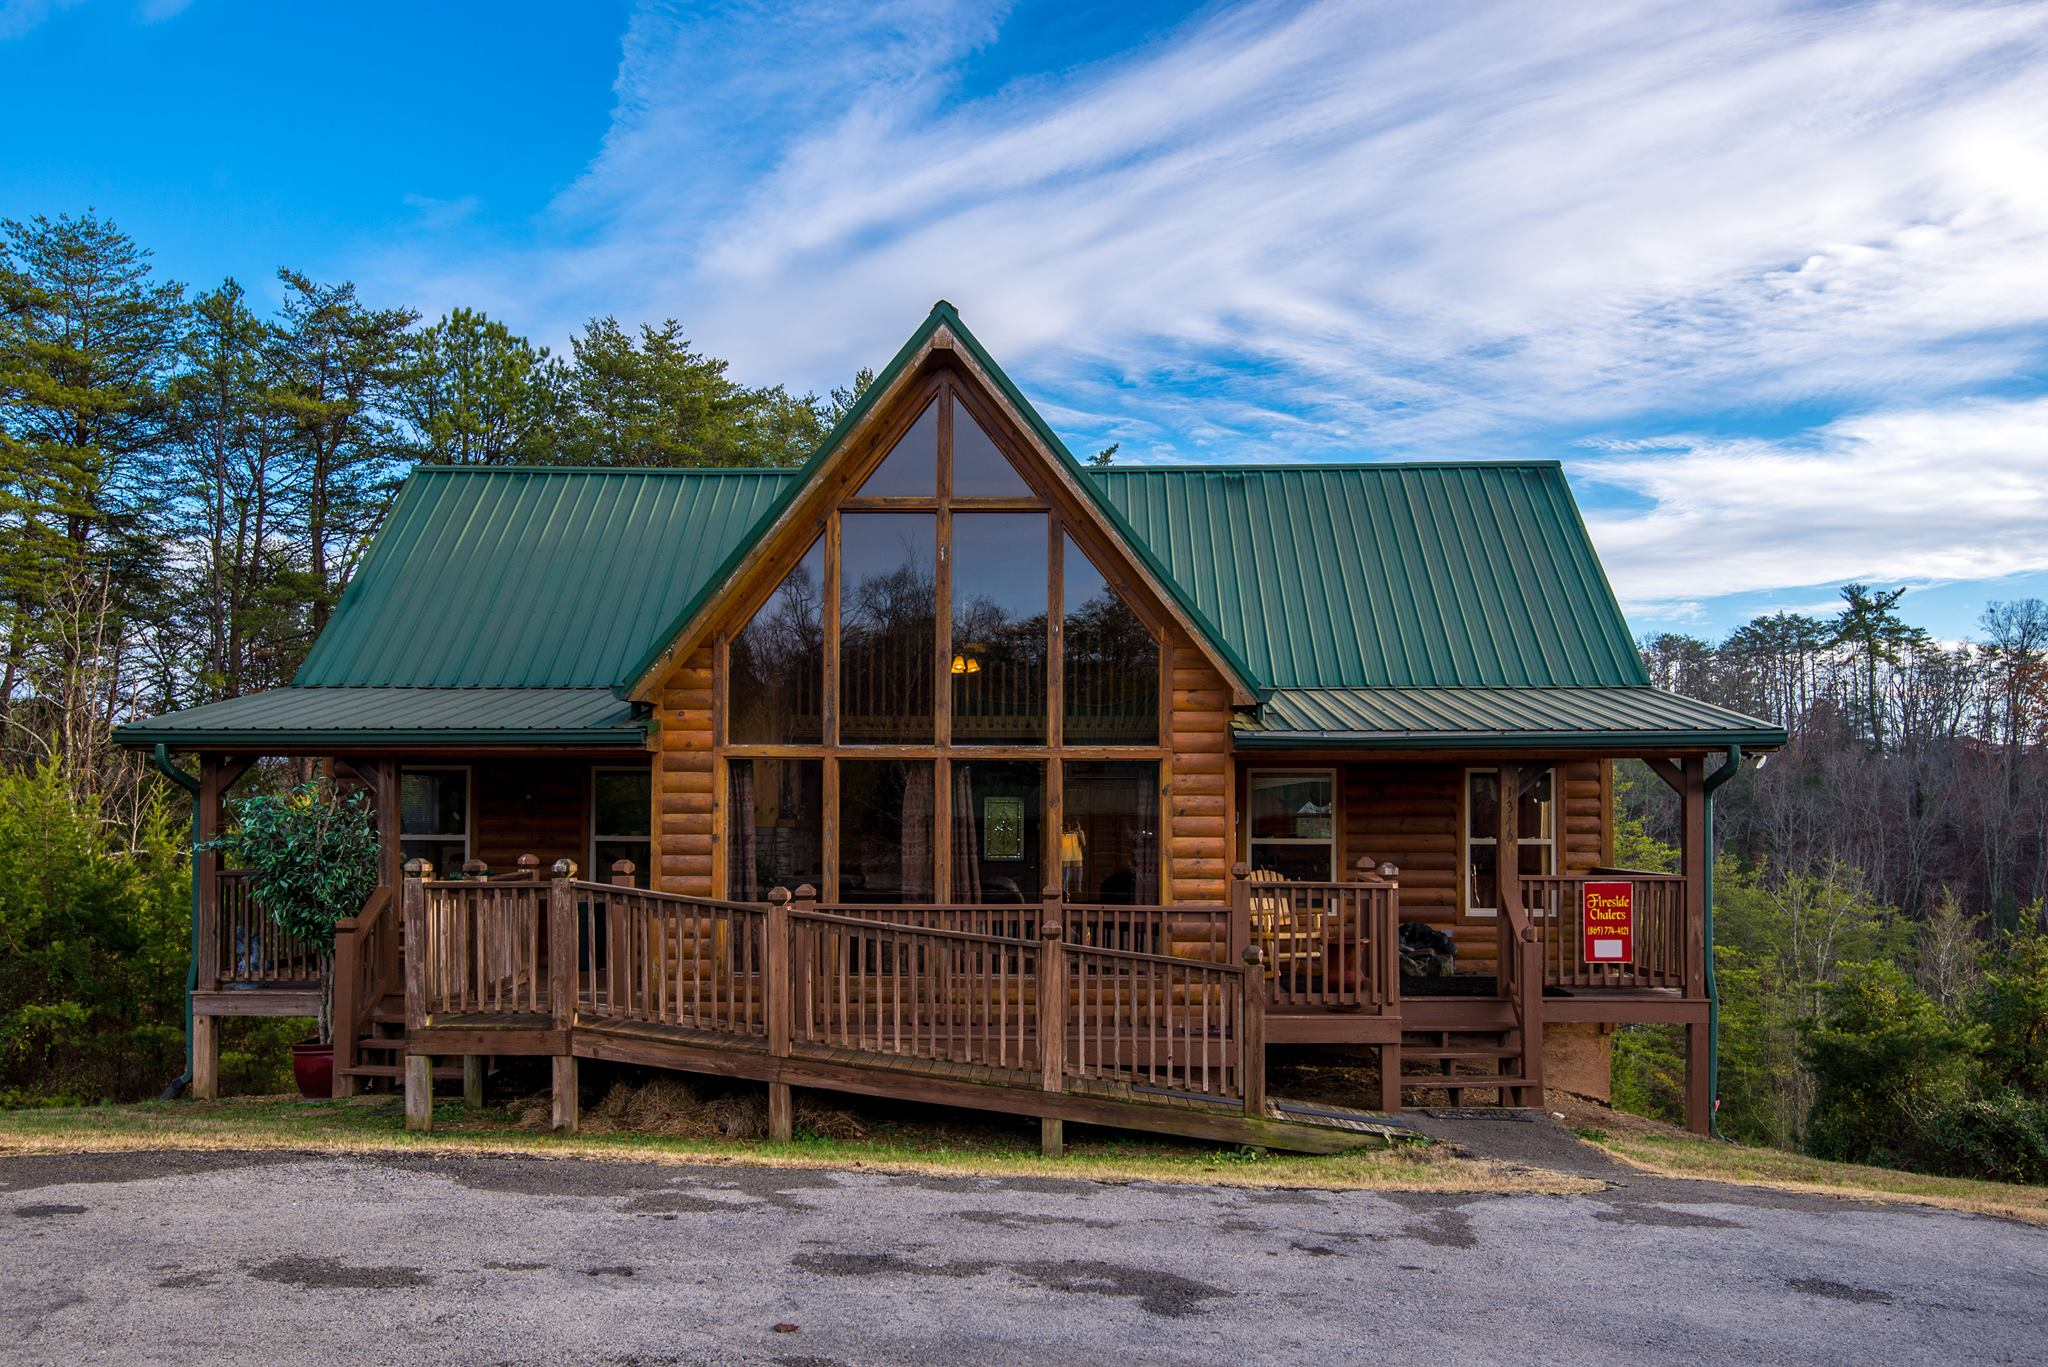 Fireside Chalet And Cabin Rentals Pigeon Forge Tennessee Four Bedroom Group Vacation Cabin